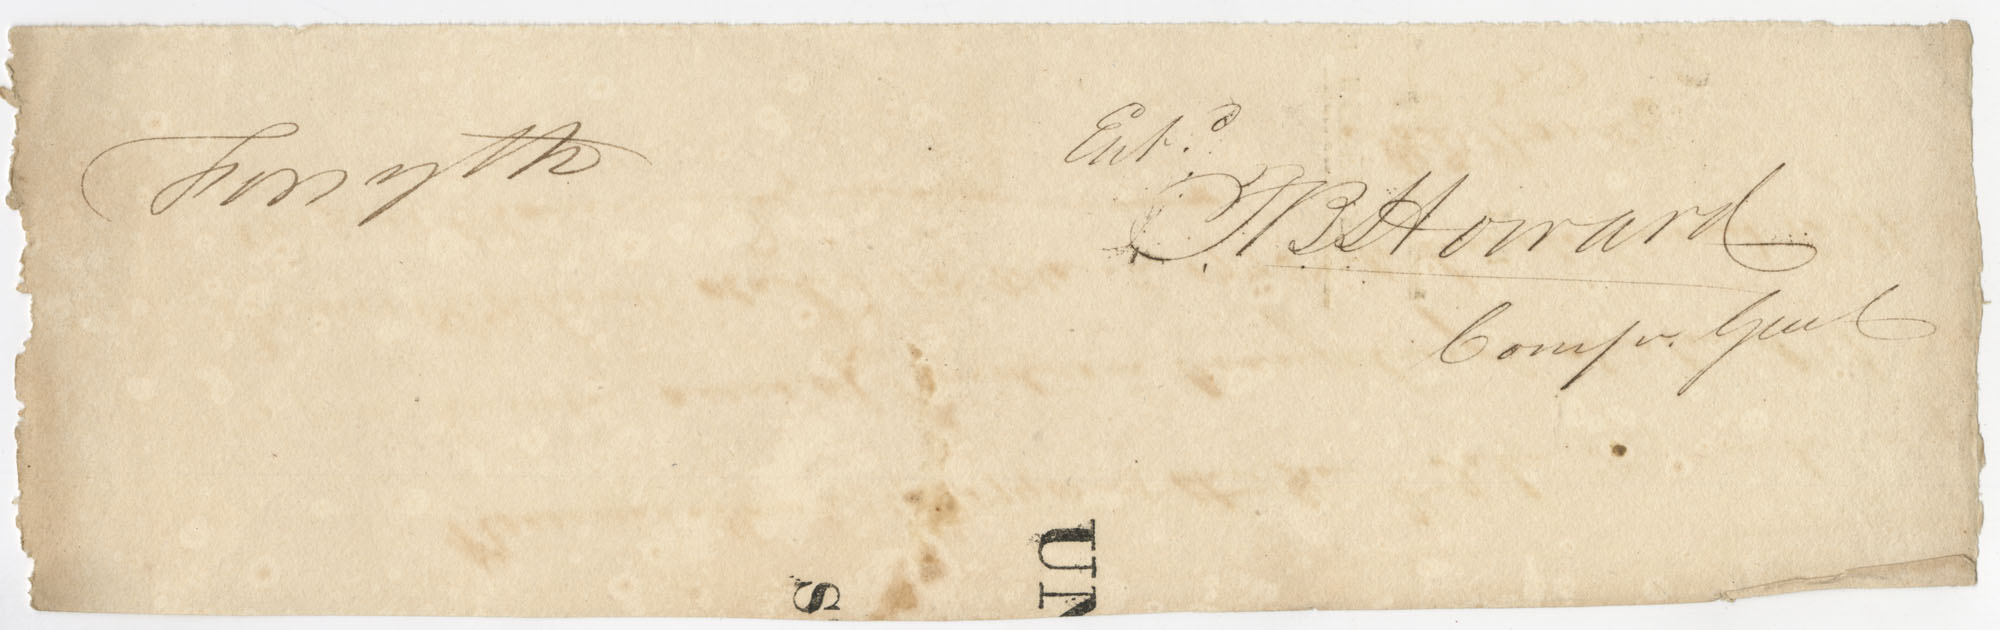 Thomas S. Grimke Autograph Collection, autograph of [Thacker] B. Howard, Comptroller General of Georgia, undated